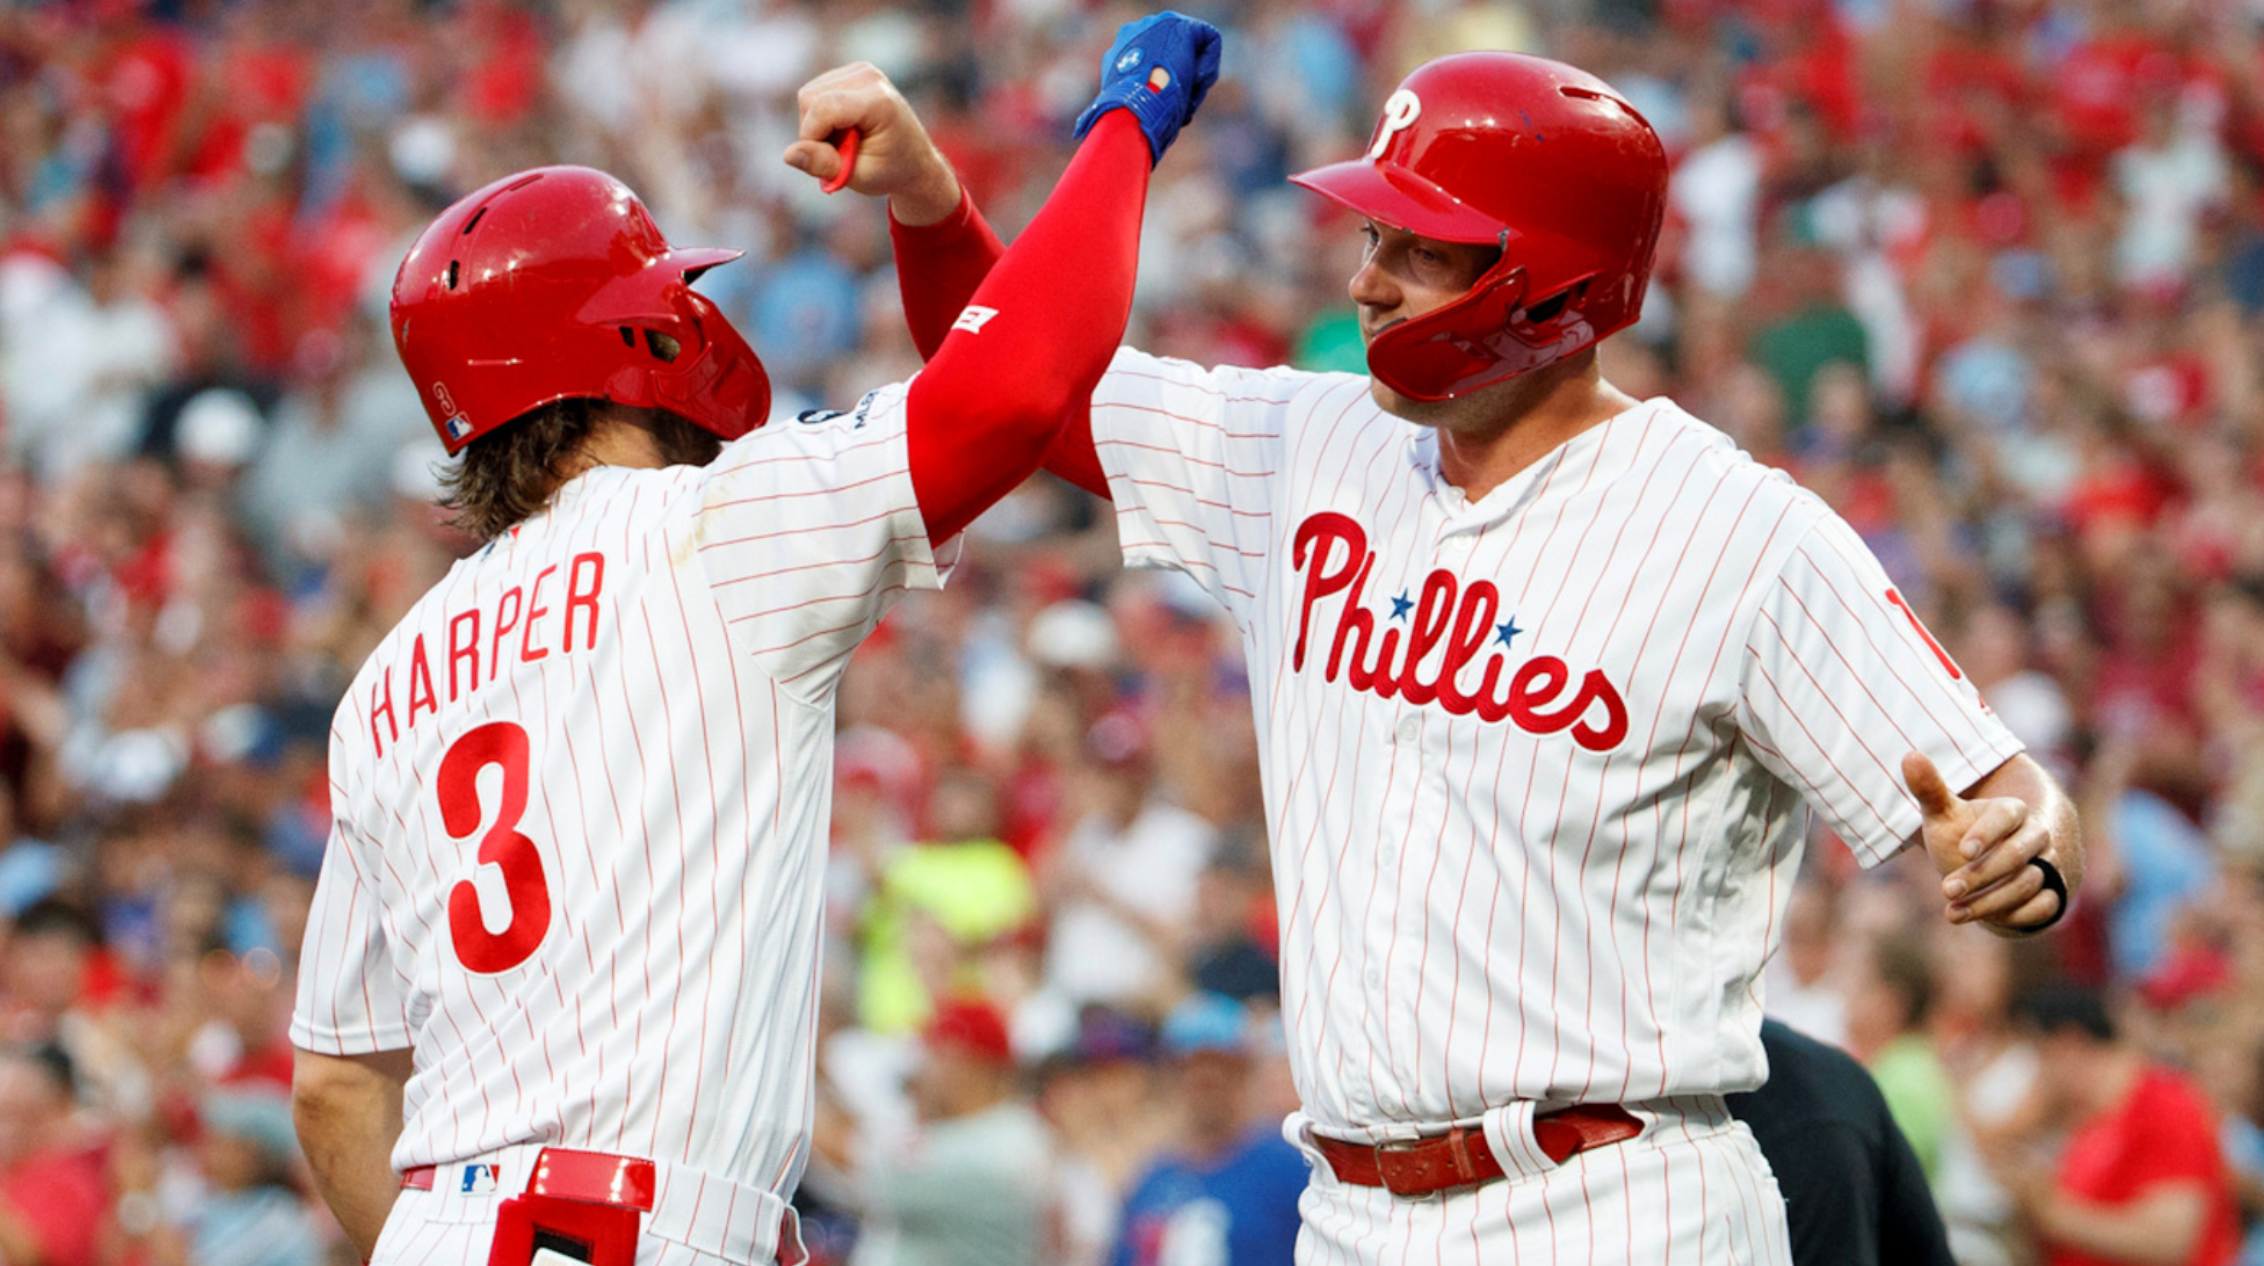 ESPN Releases The First Power Rankings, Let's Take A Peek Where They Have The Phillies